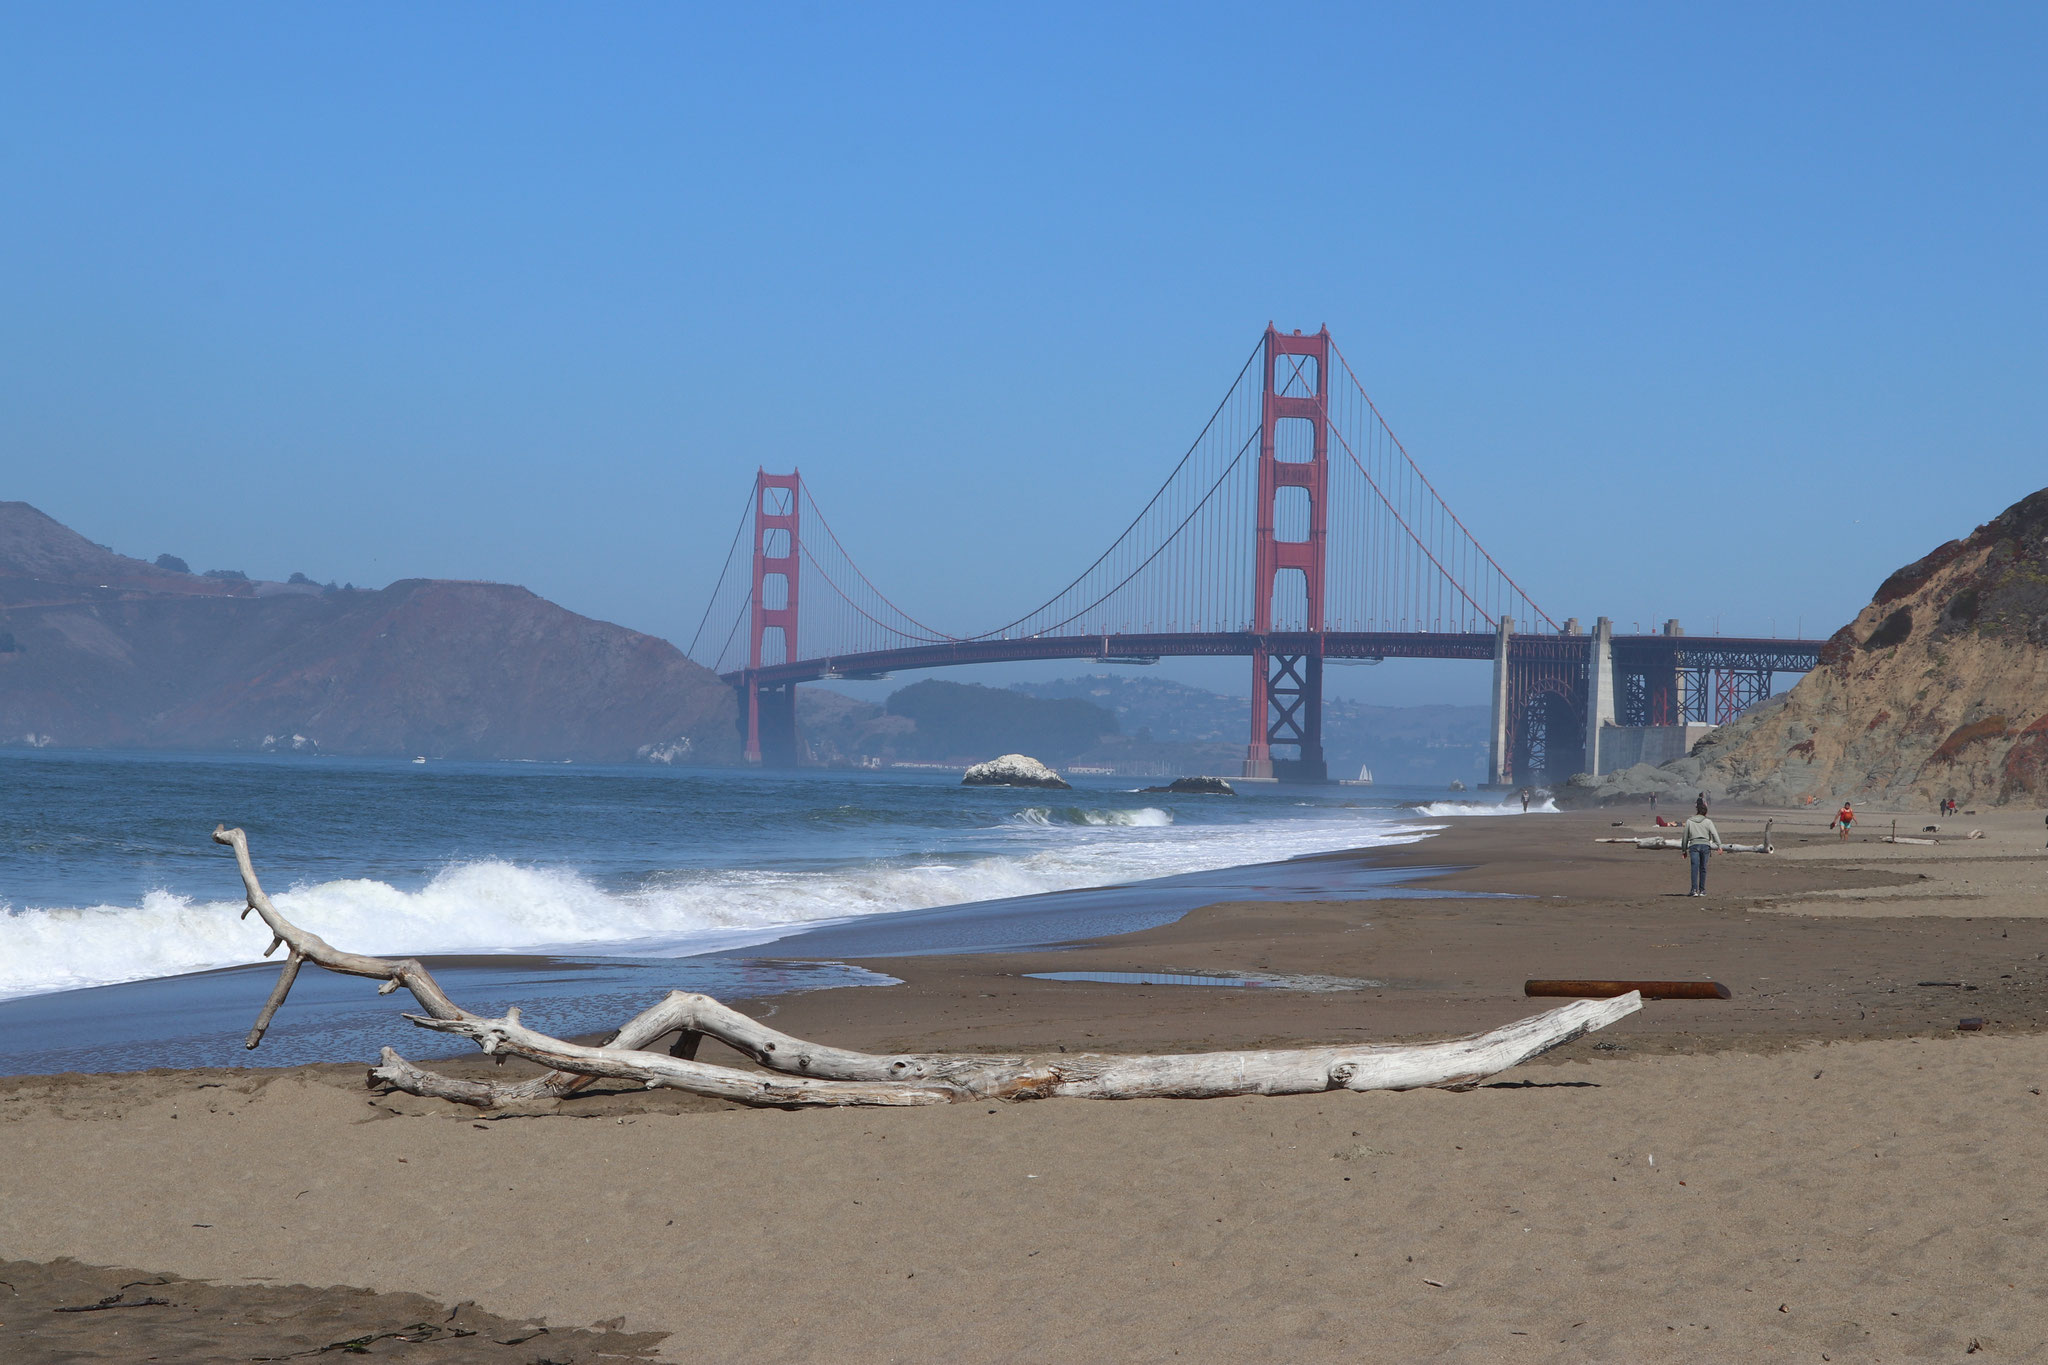 ...also a beautiful beach...only difference the big waves beating the sand from the open pacific ocean